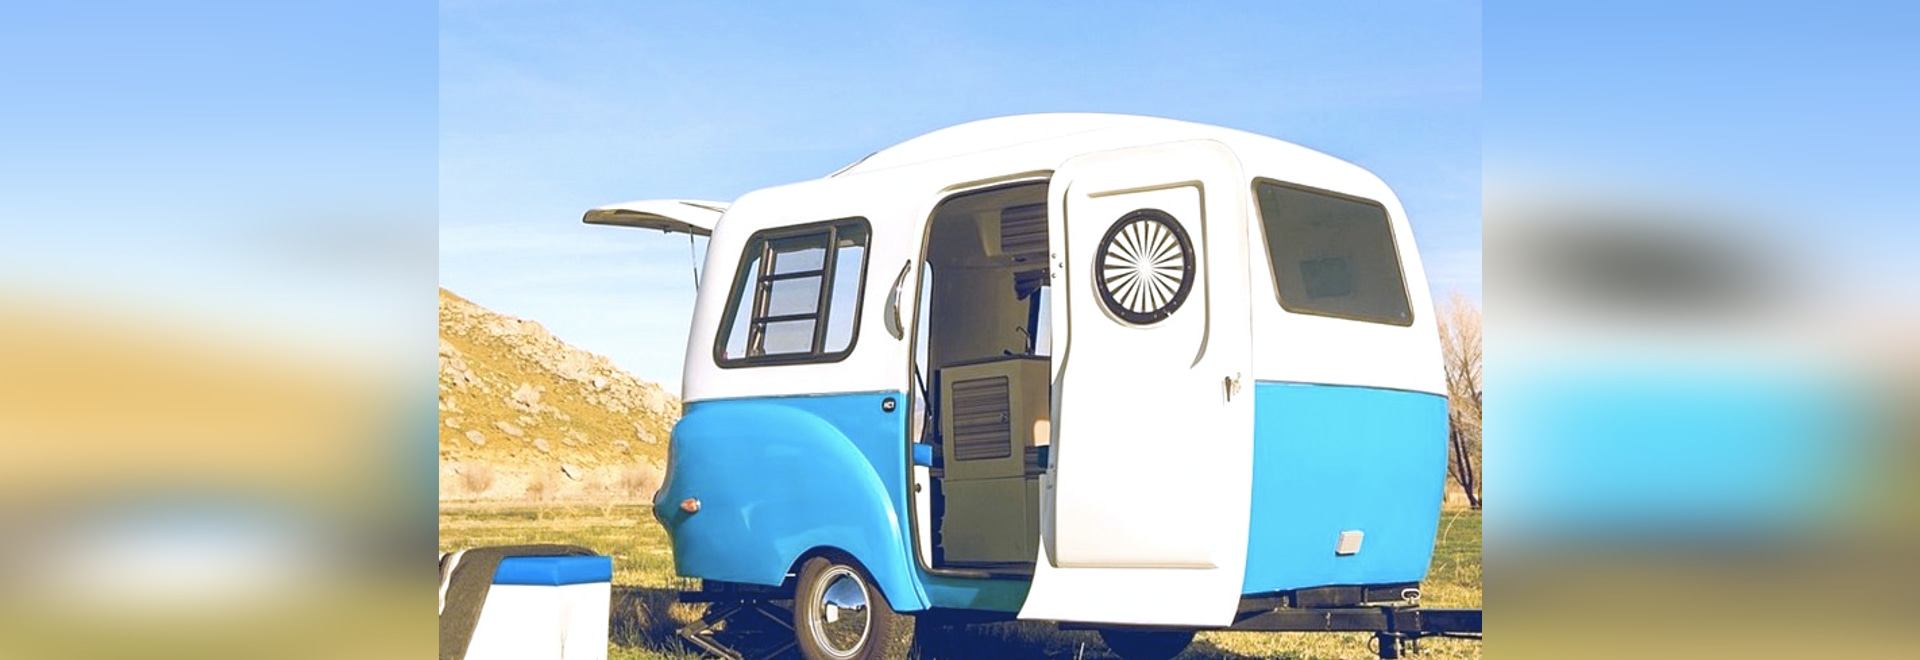 Solar Retro Modern Happier Camper Hc1 Features A Lego Like Interior Off Grid Power System On An Rv Recreational Vehicle Or Dreaming Of Summer Road Trip Adventure Youll Love The